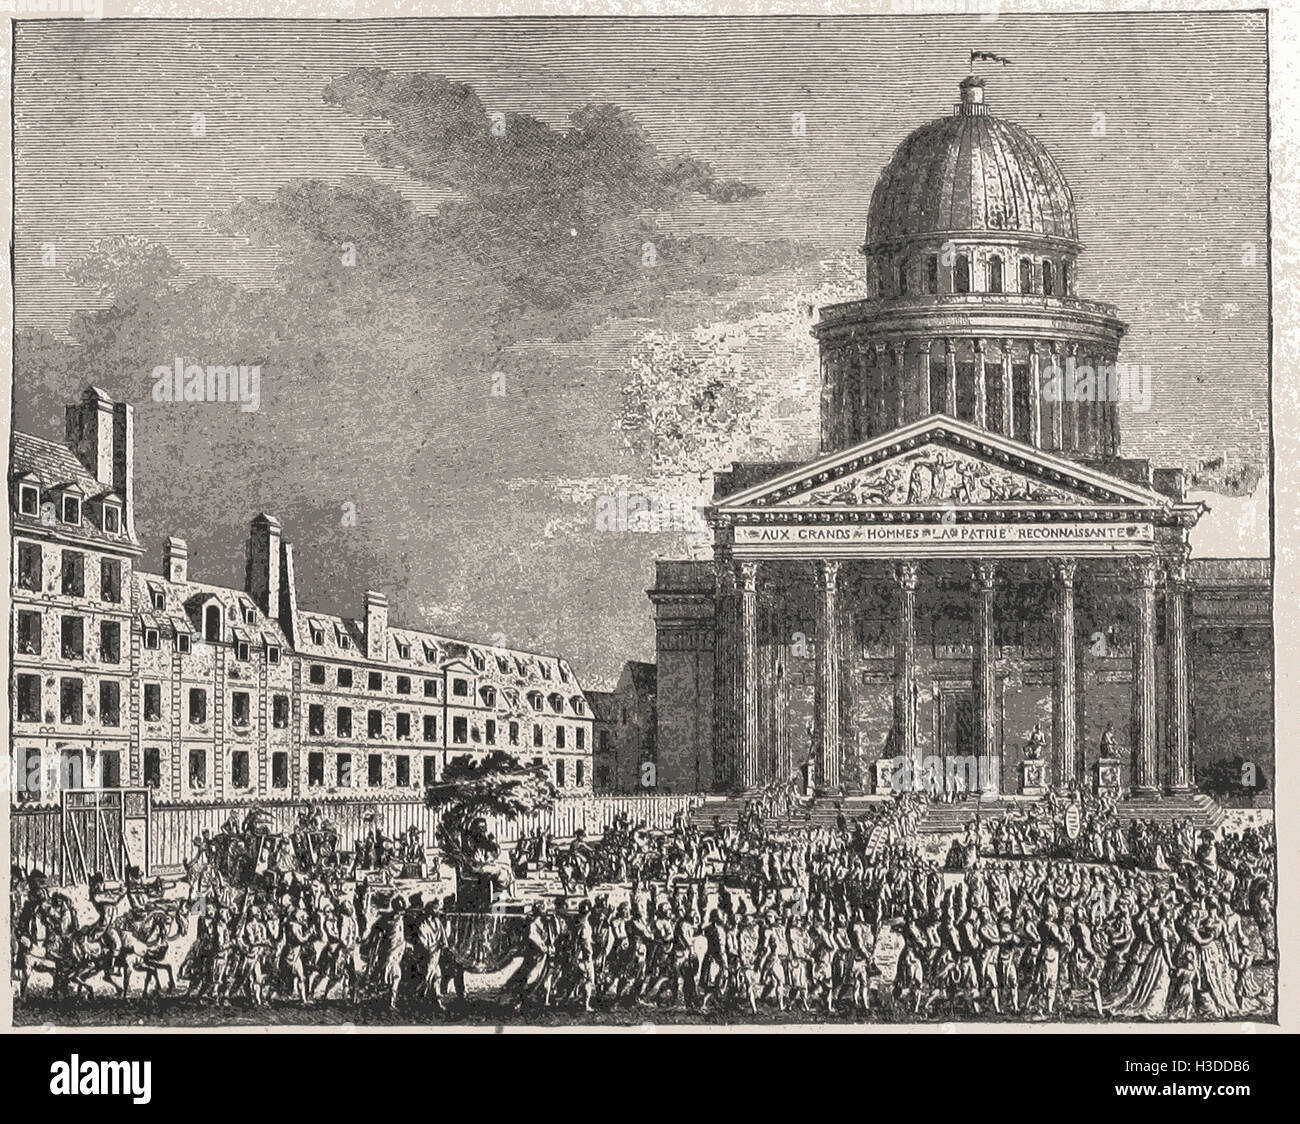 CELEBRATION OF THE RIGHTS OF MAN AT THE PANTHEON AND FUNERAL OF VOLTAIRE,  12TH OF JULY, 1791 - Stock Image